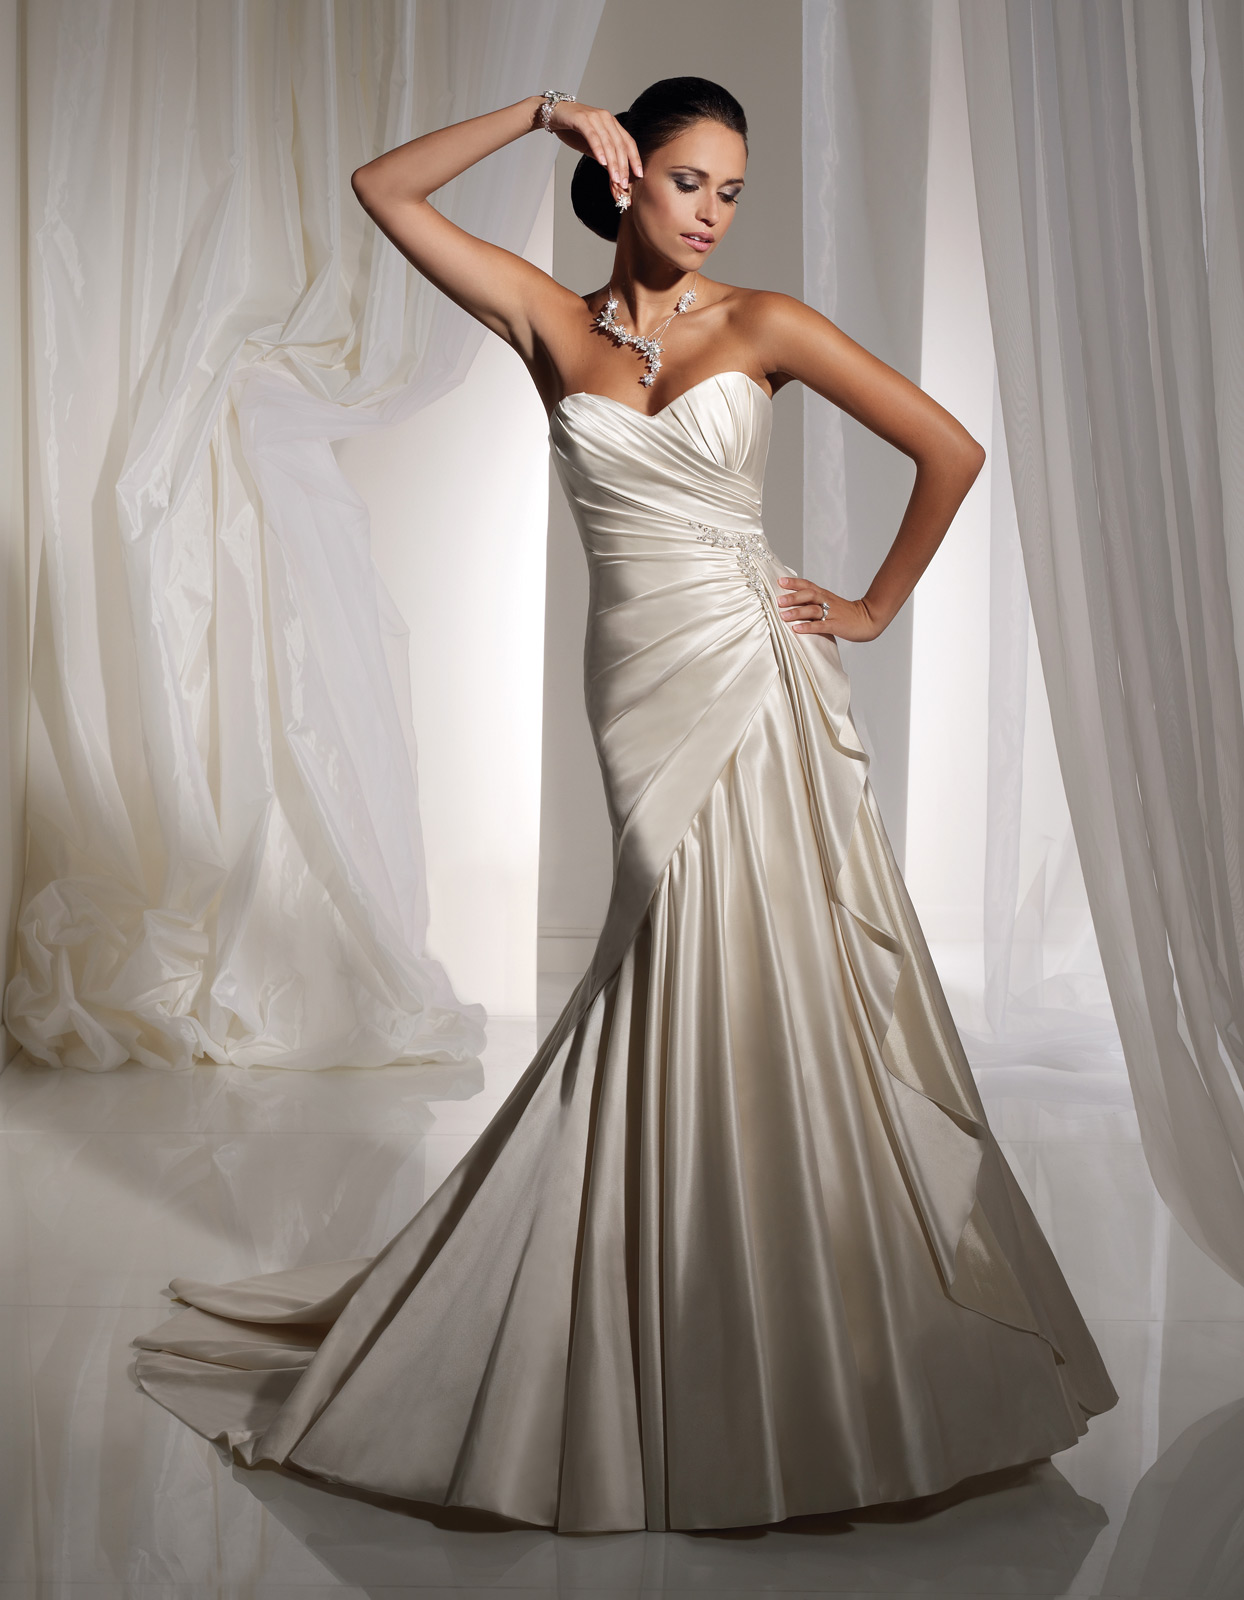 House Of Brides Couture Hosts Sophia Tolli Trunk Show Event From Wedding Dresses Chattanooga Tn